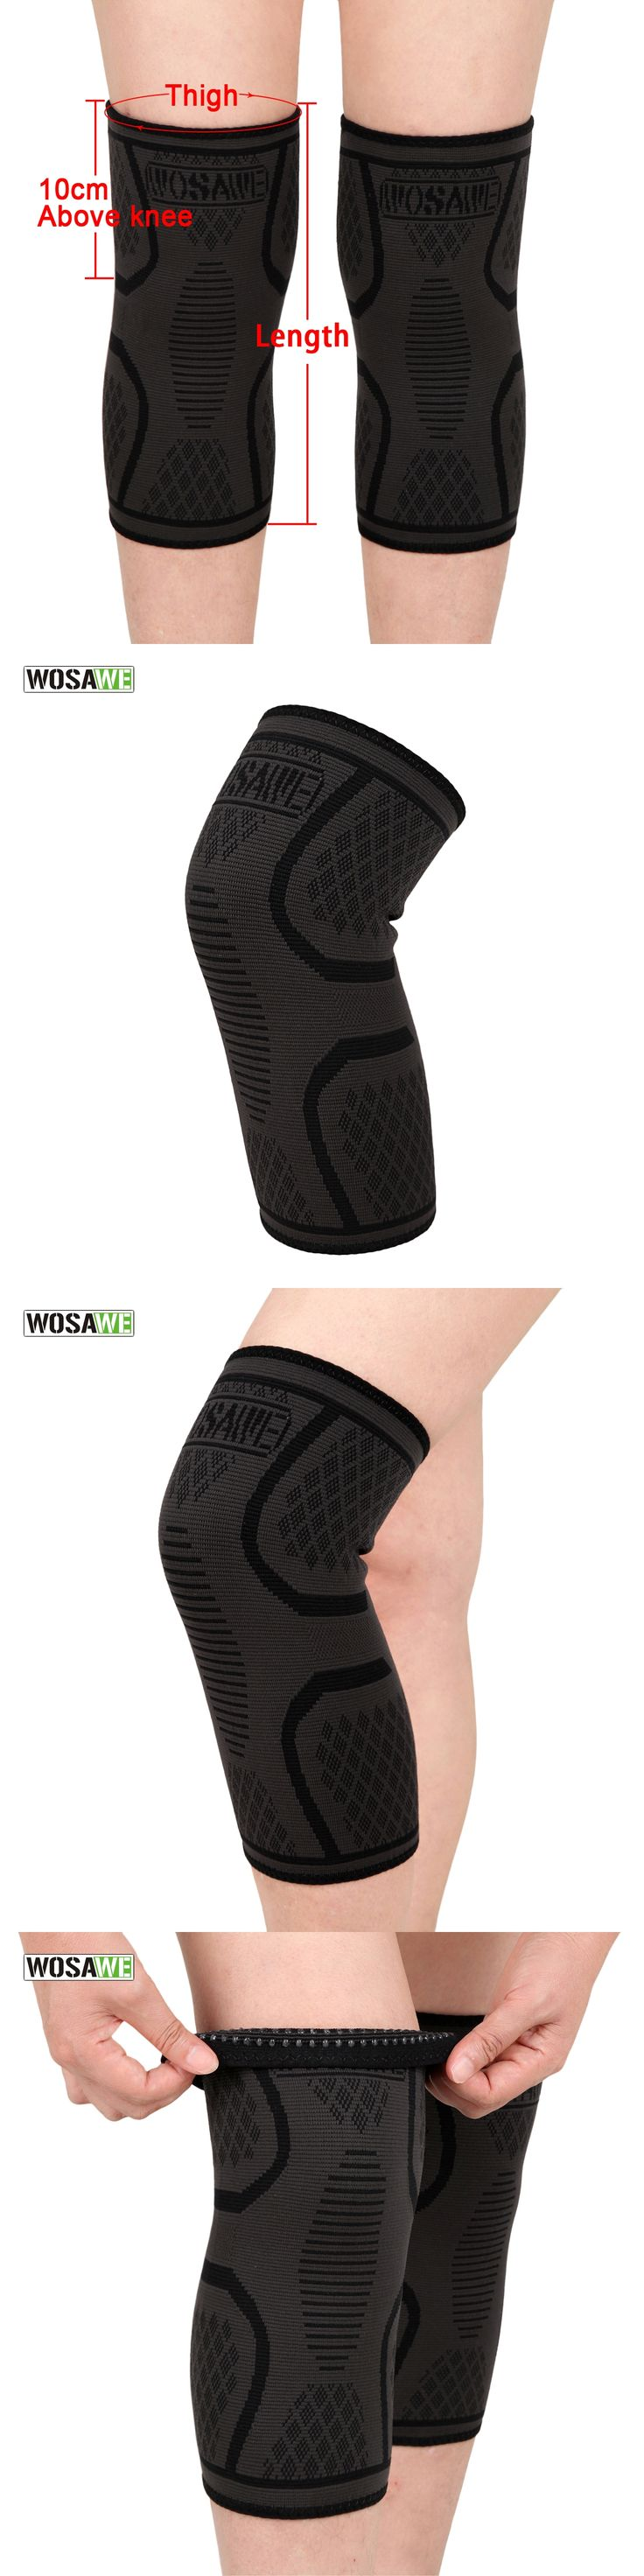 WOSAWE 1 PC Elastic Fitness Knee Pad Compression Cycling Running Hiking Outdoors Sports Knee Brace Support Spandex Comfort Guard